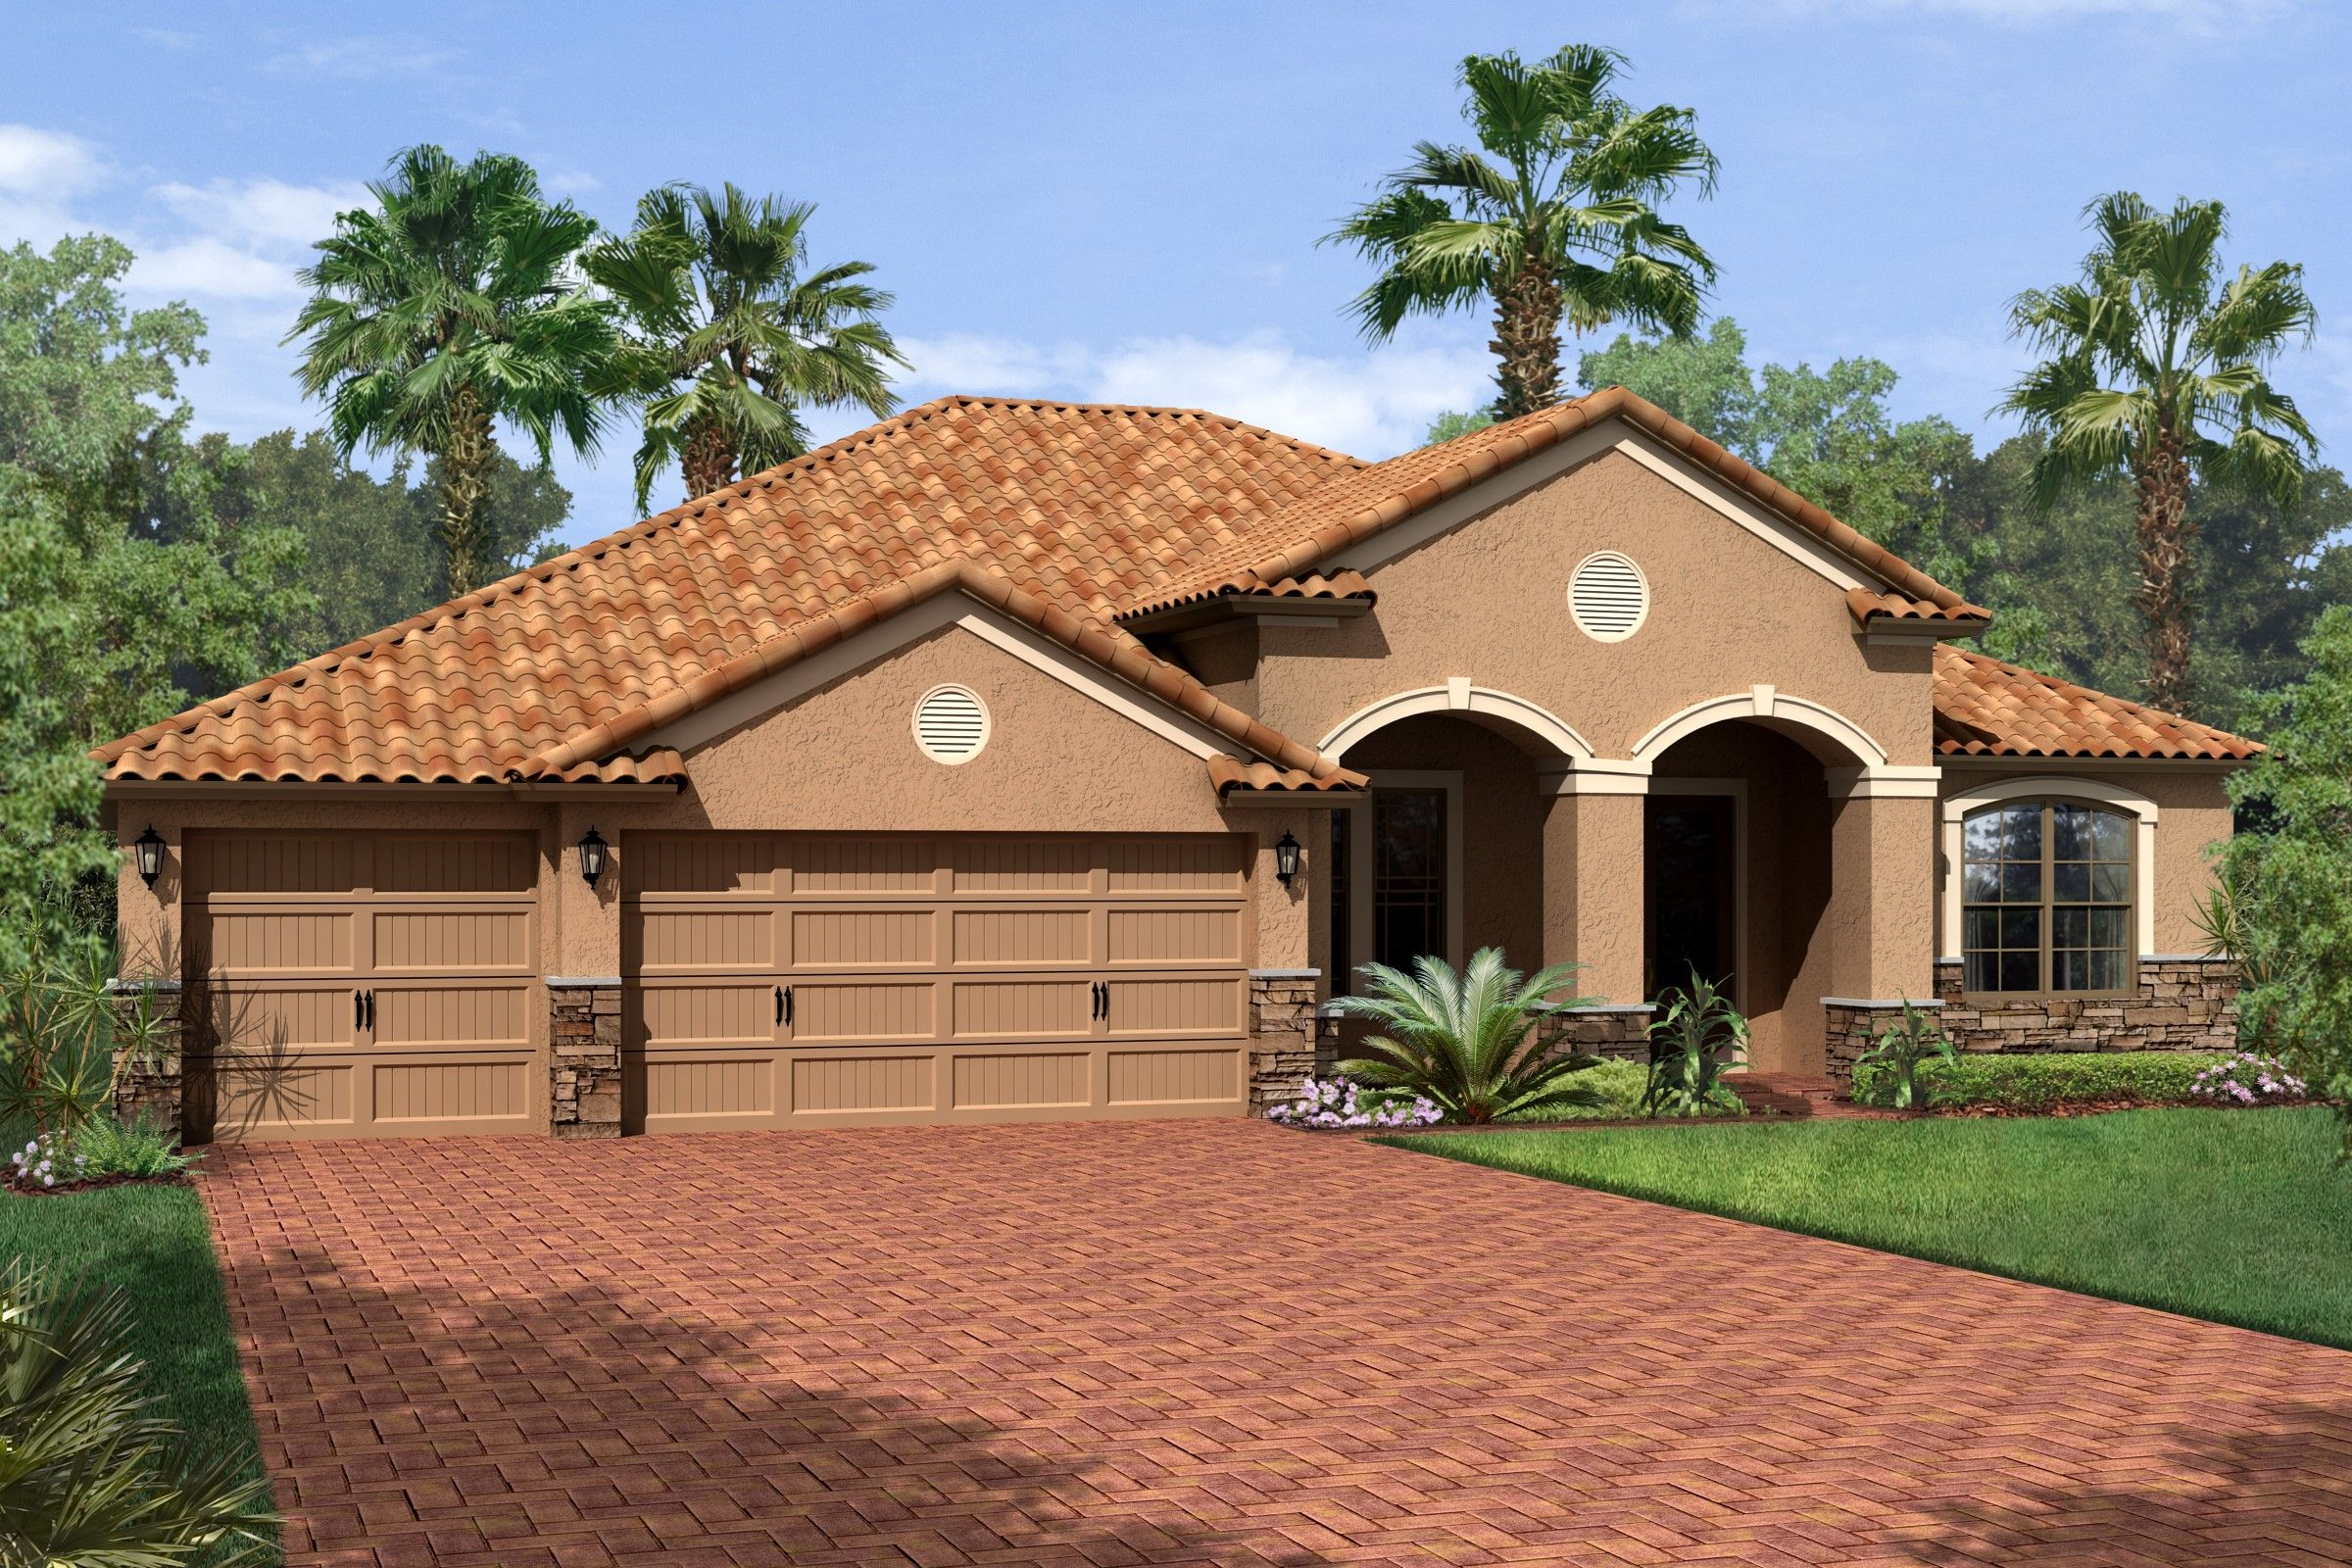 Lakeland fl homes for sale bukit lakeland fl homes for for Florida house plans for sale